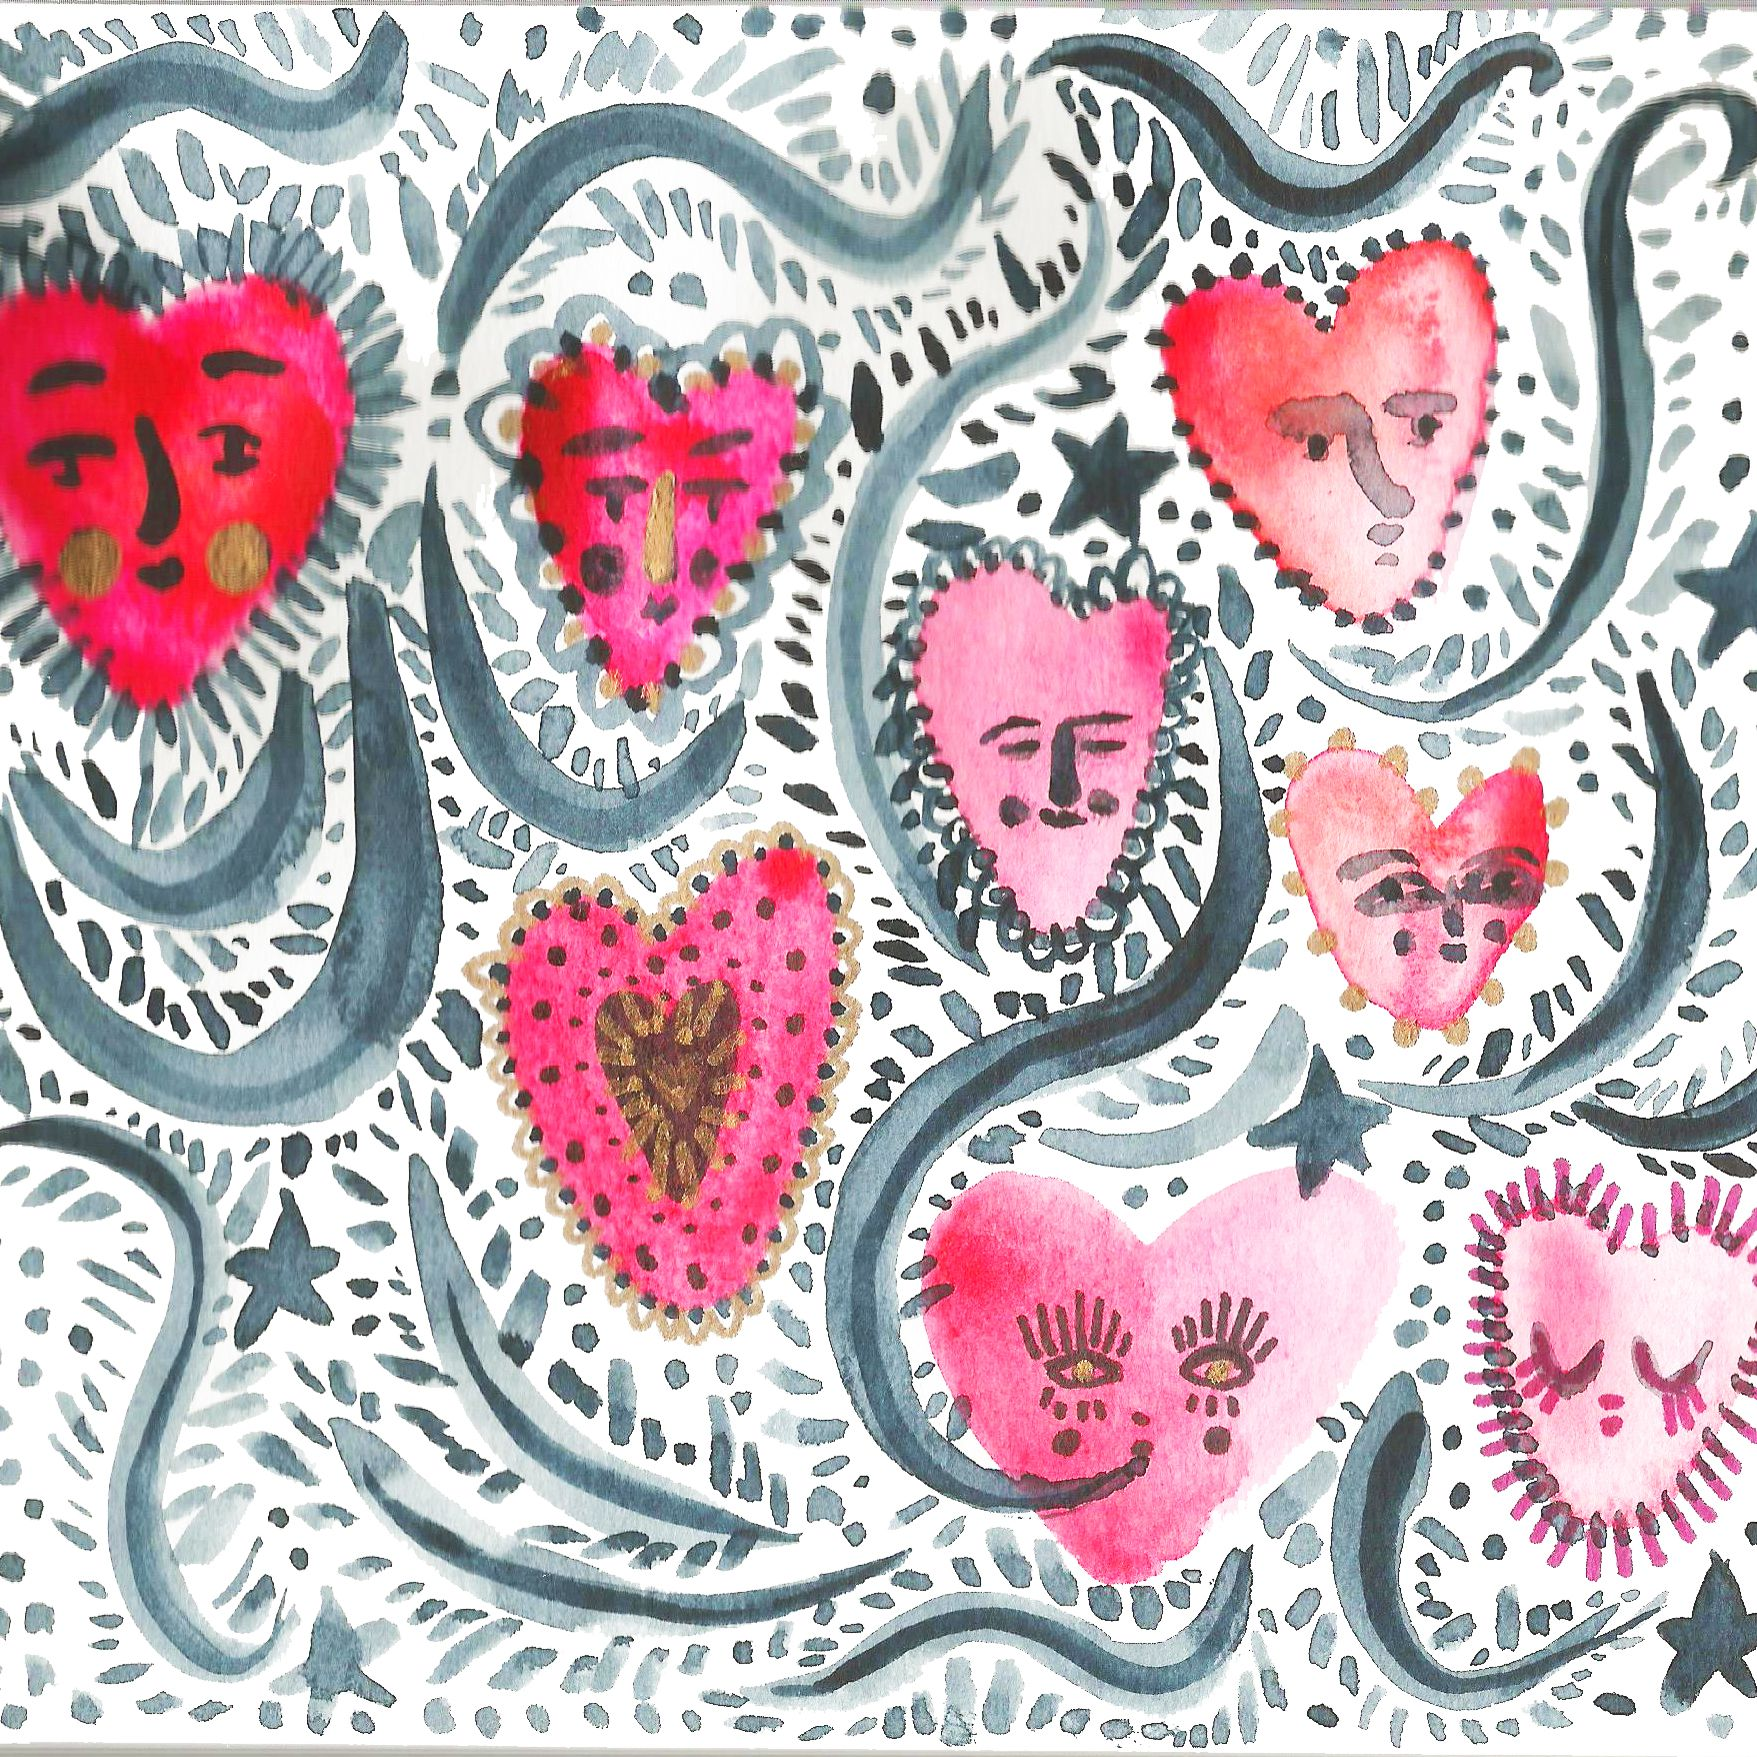 watercolour watercolor love hearts stars pink red & gold